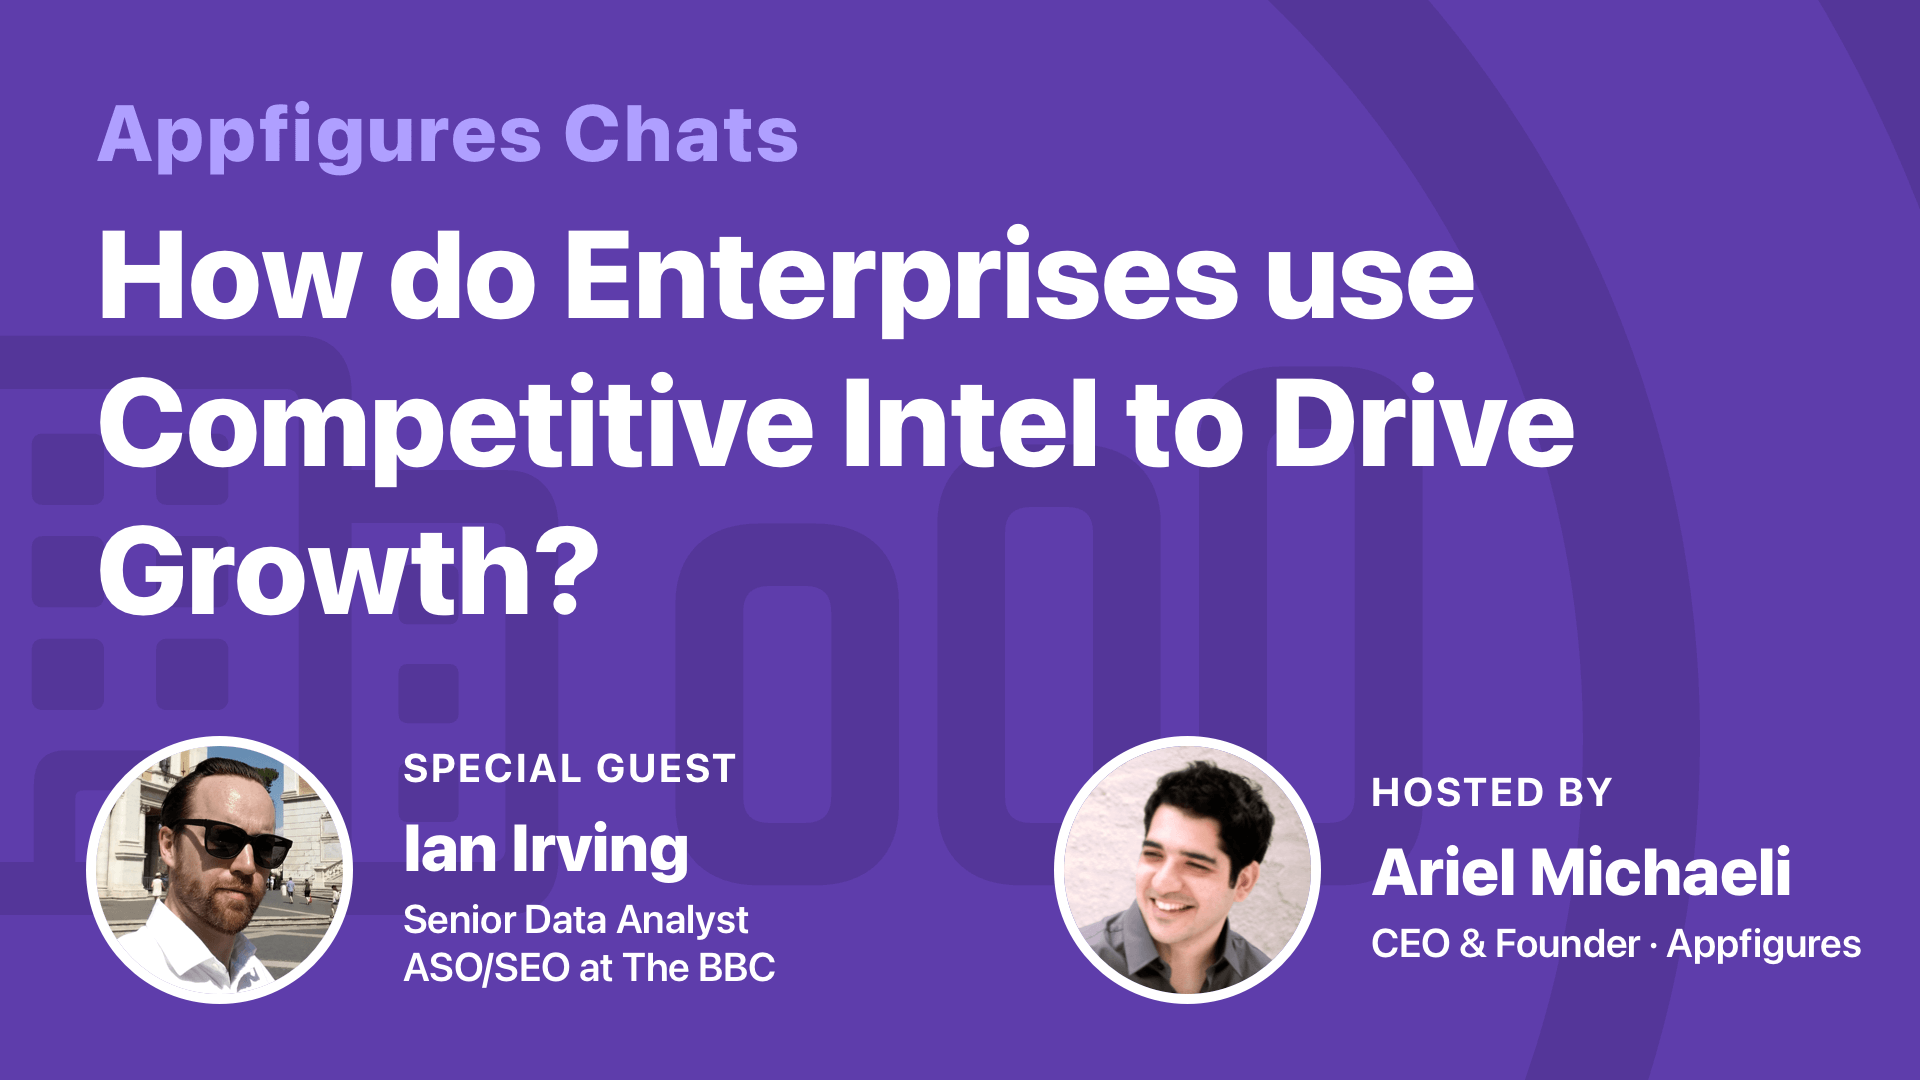 �� AF Chats: Using Competitive Intelligence to Drive Growth with Ian Irving from The BBC